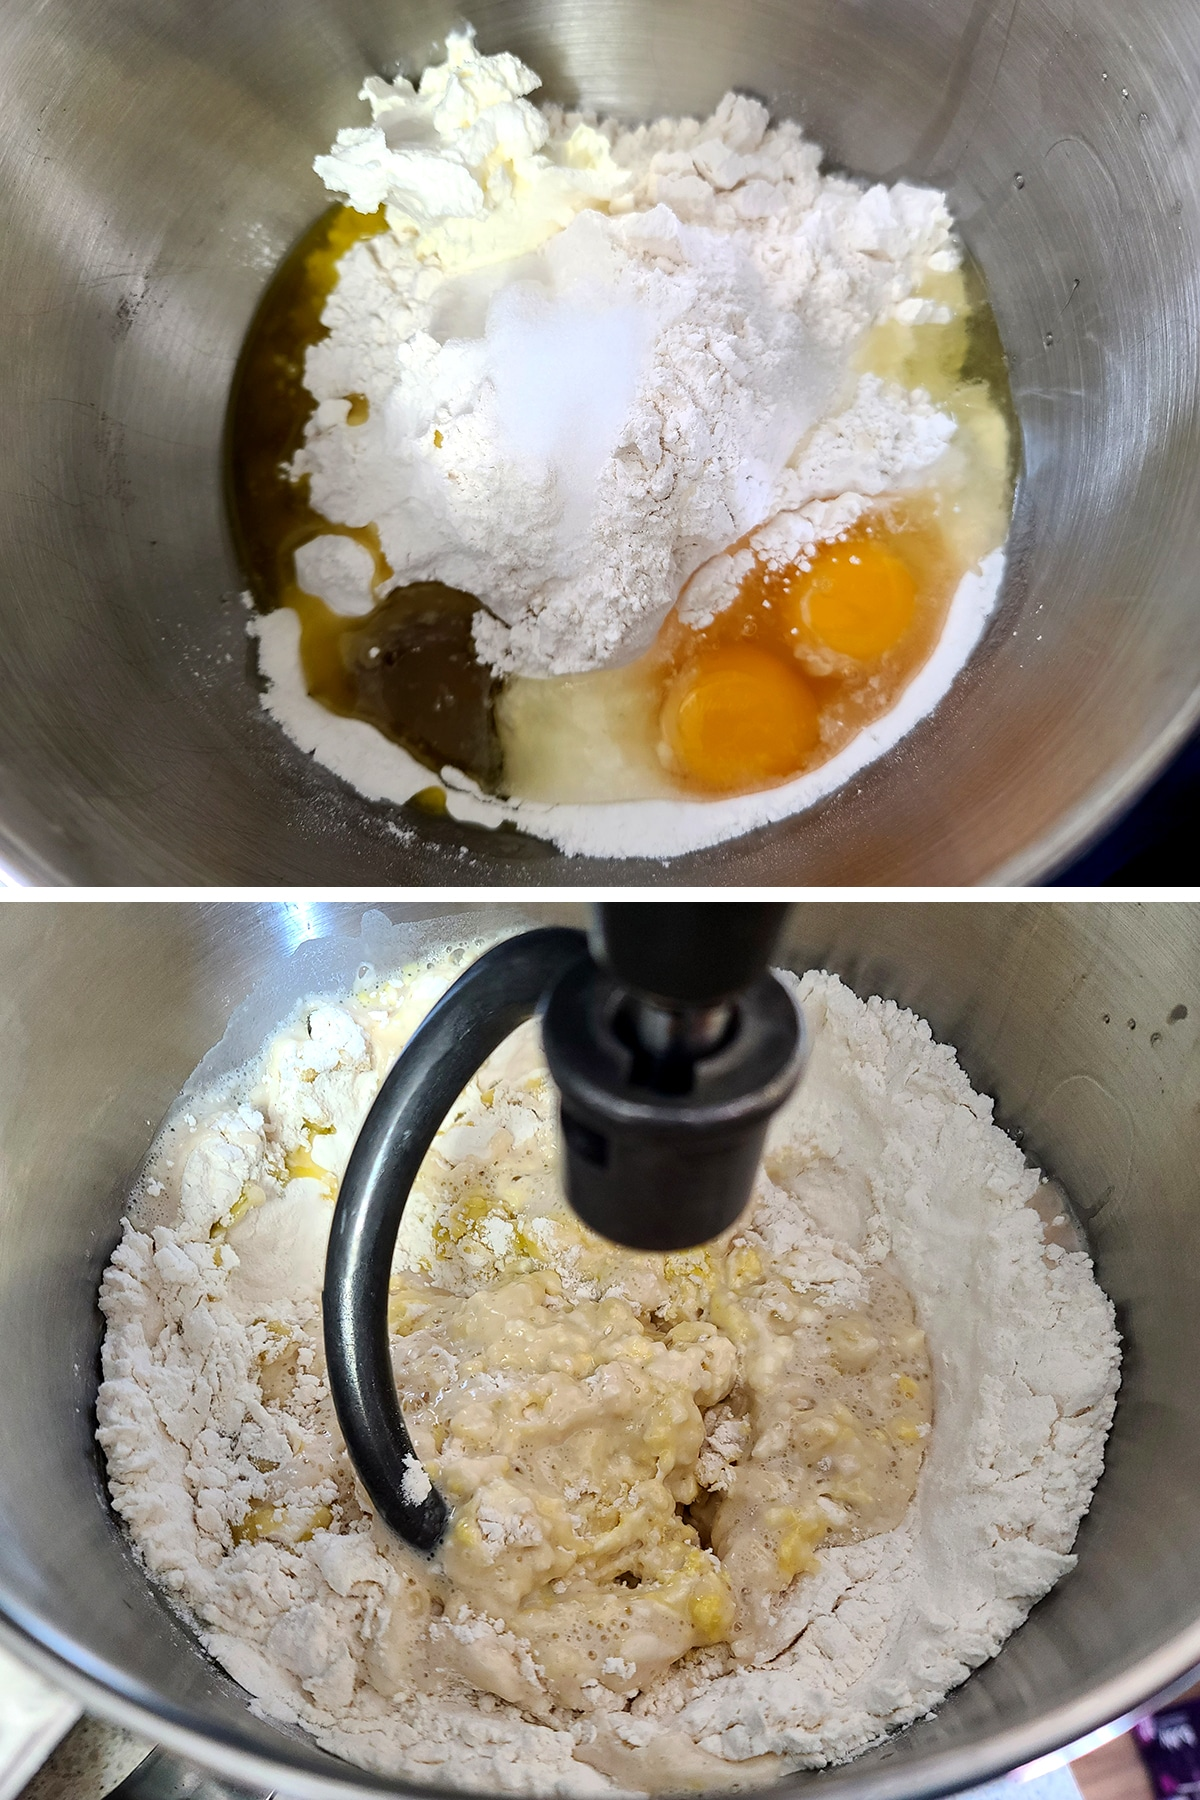 Eggs, oil, and yeast mixture are added to the bowl of a stand mixer.